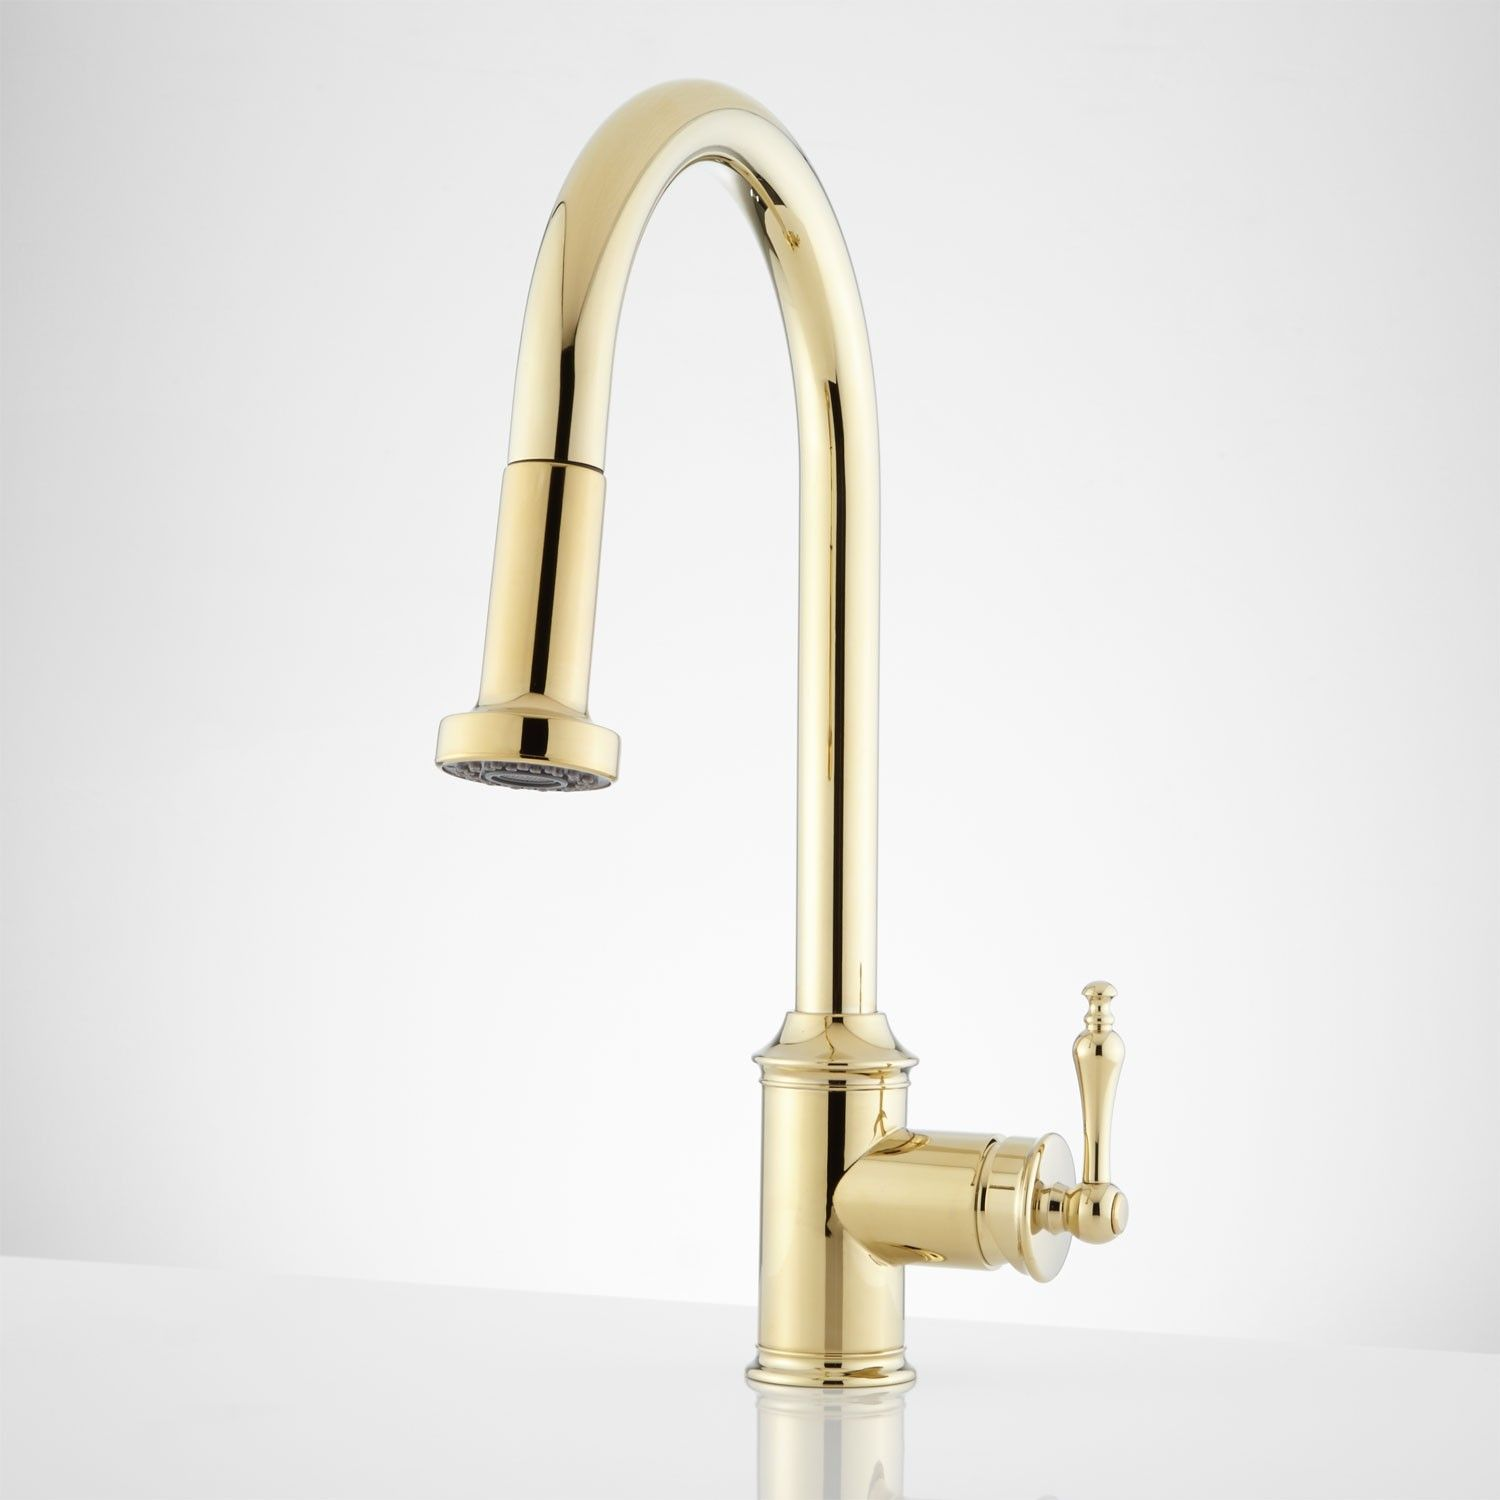 unlacquered brass kitchen faucet Ogden Single Hole Kitchen Faucet with Swivel Spout Oil Rubbed Bronze